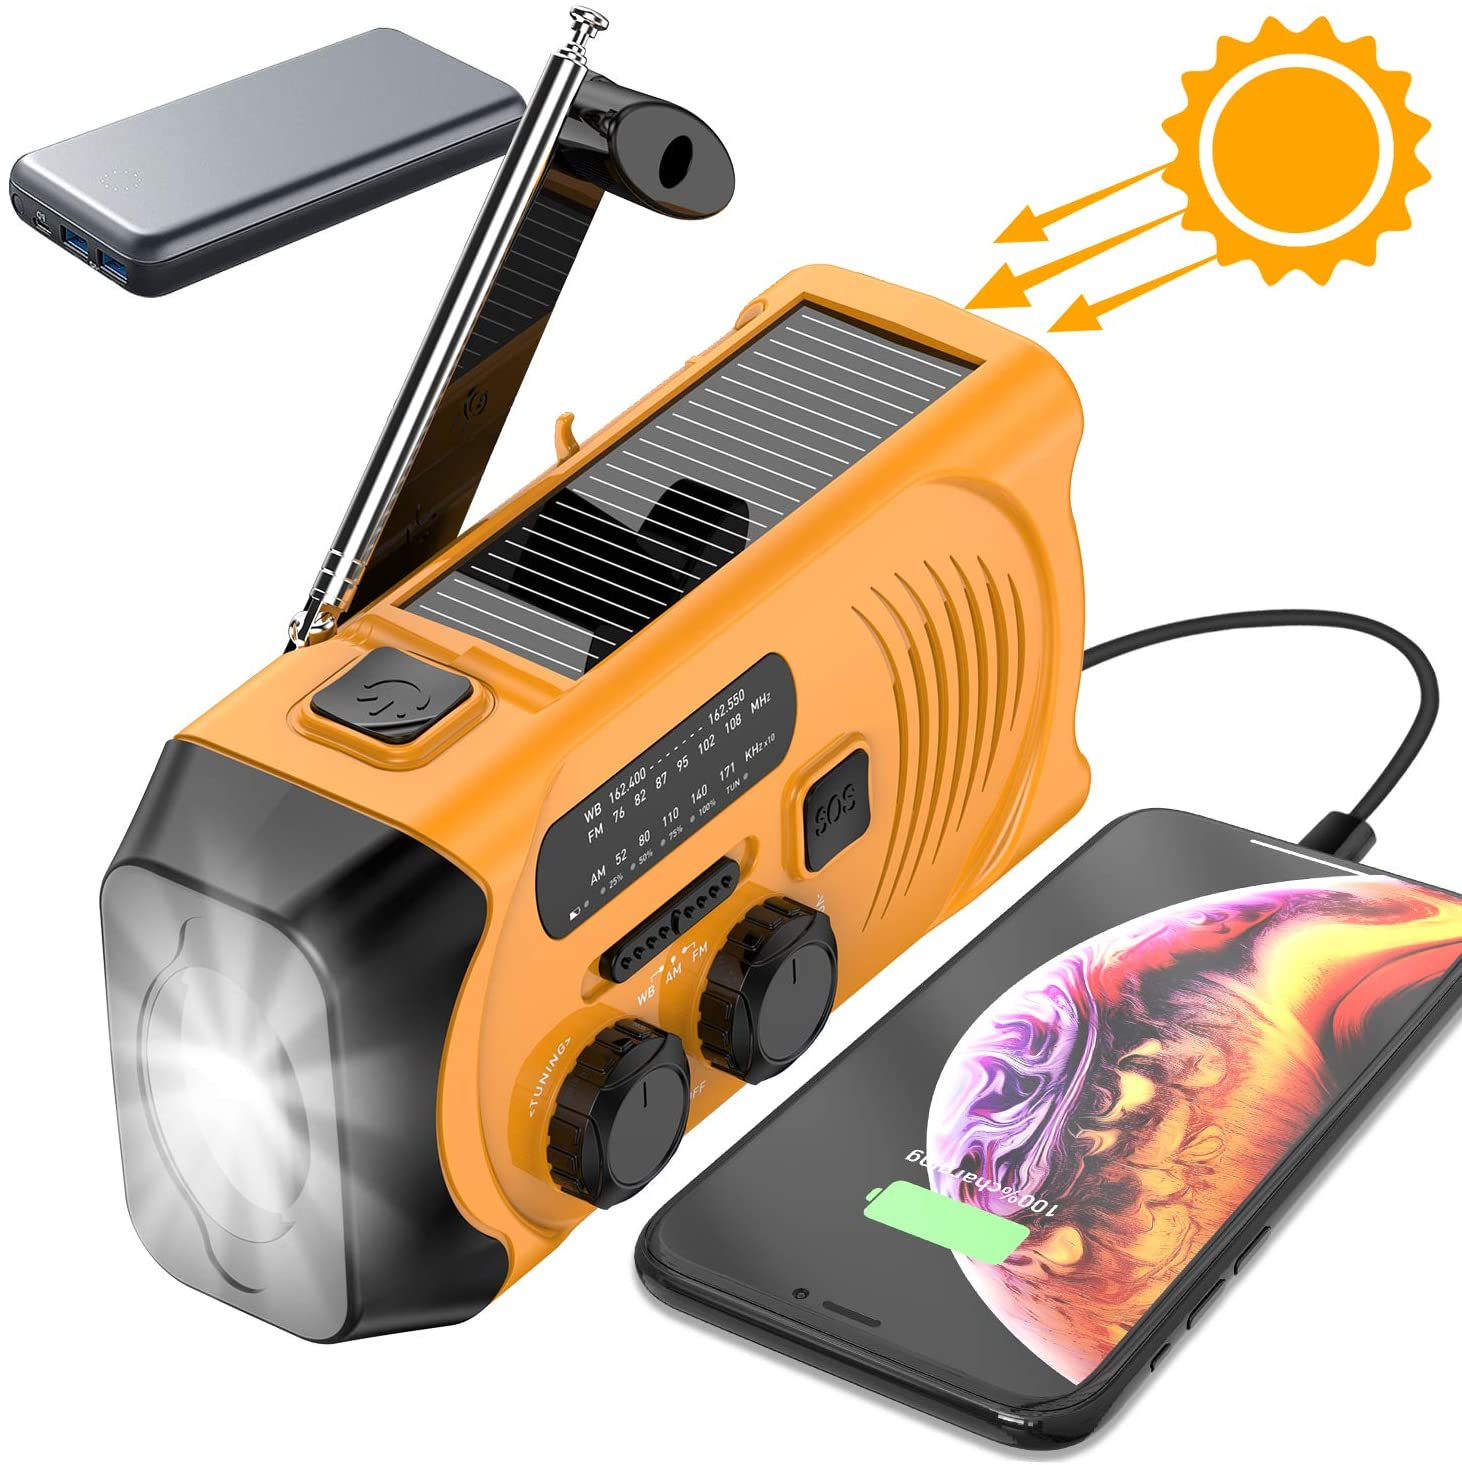 Emergency Weather Radio, RegeMoudal Solar Hand Crank Portable NOAA Weather Radio with AM/FM, LED Flashlight, Reading Lamp, 2000mAh Power Bank USB Charger and SOS Alarm (Orang)